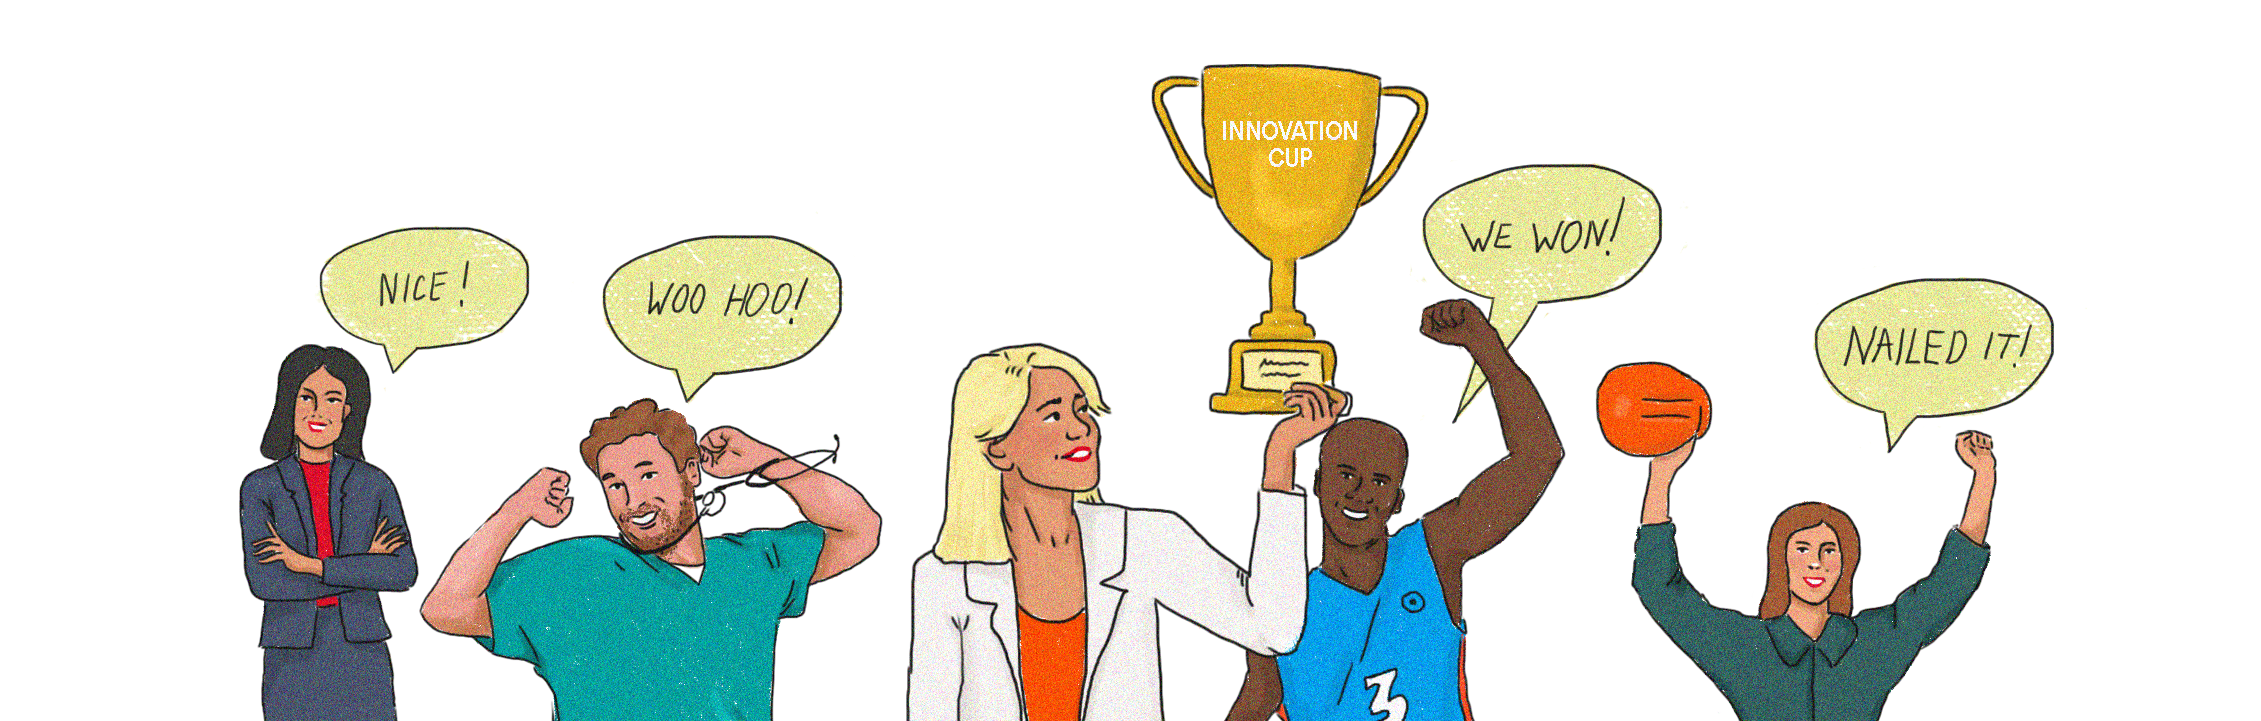 about us Innovate To Win - ThriveableBiz